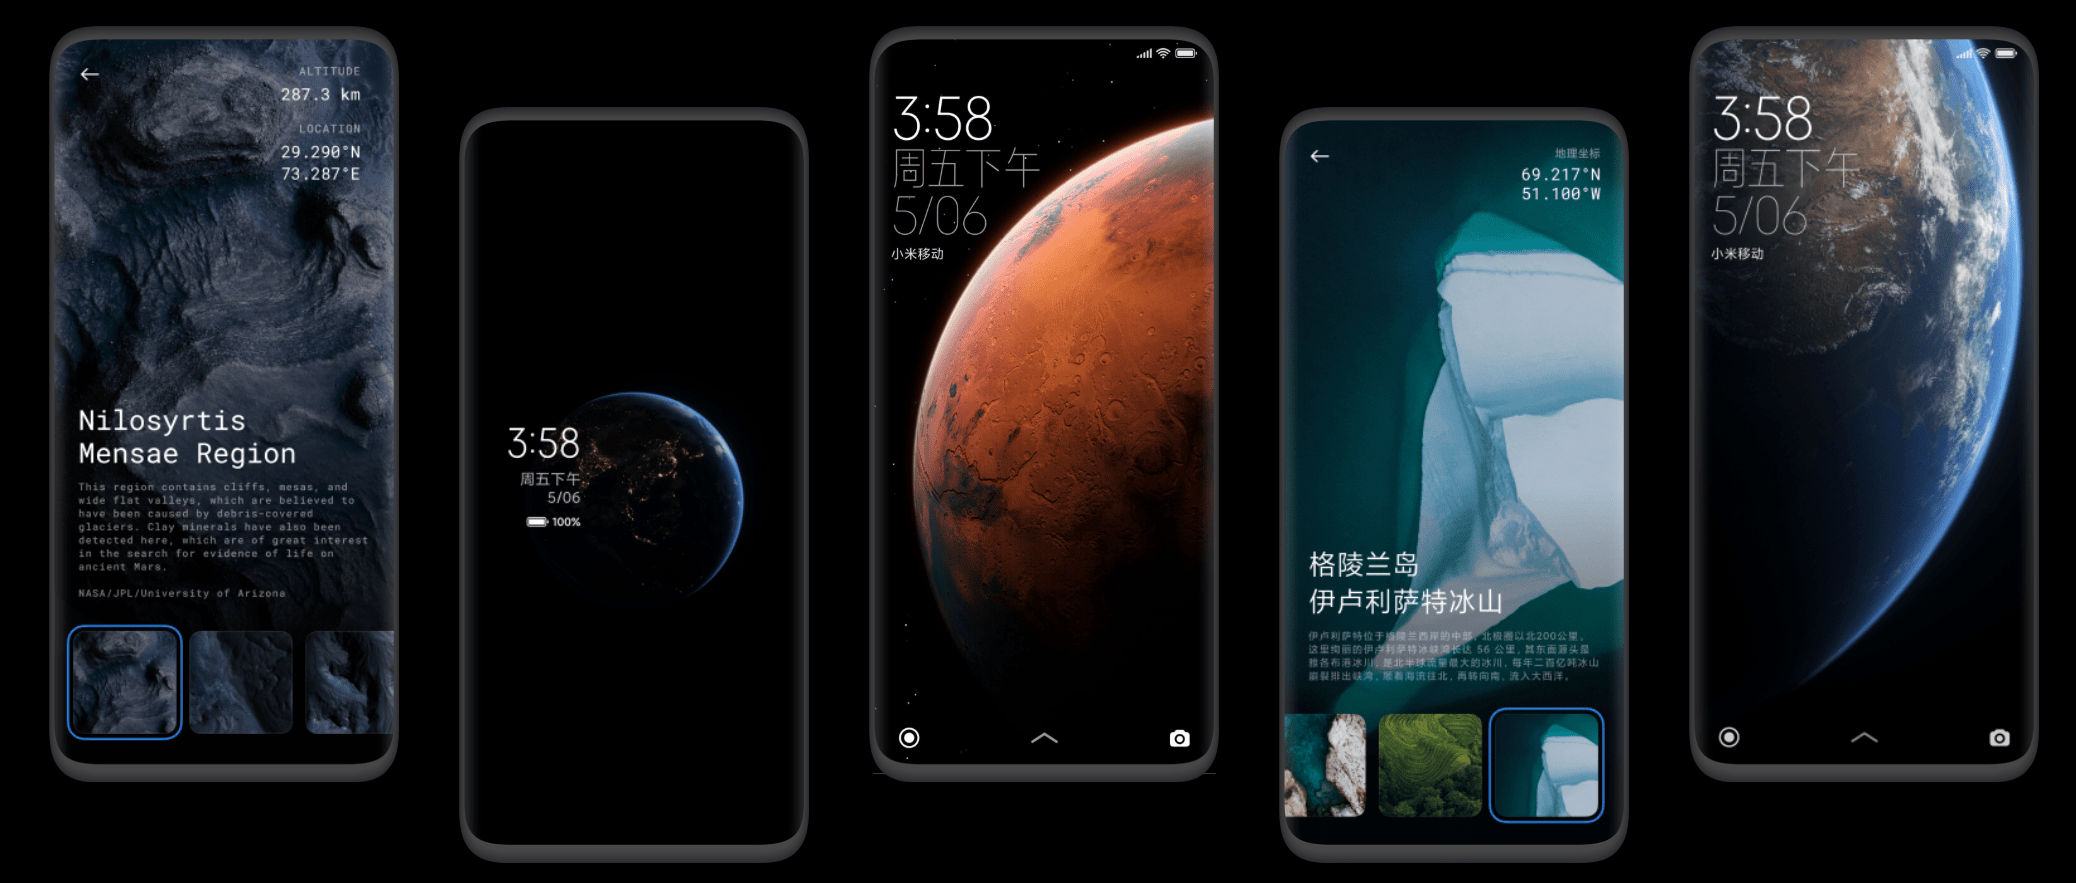 Lancement de MIUI 12, Windows 10 plus près de Linux et Apple Glass – Tech'spresso